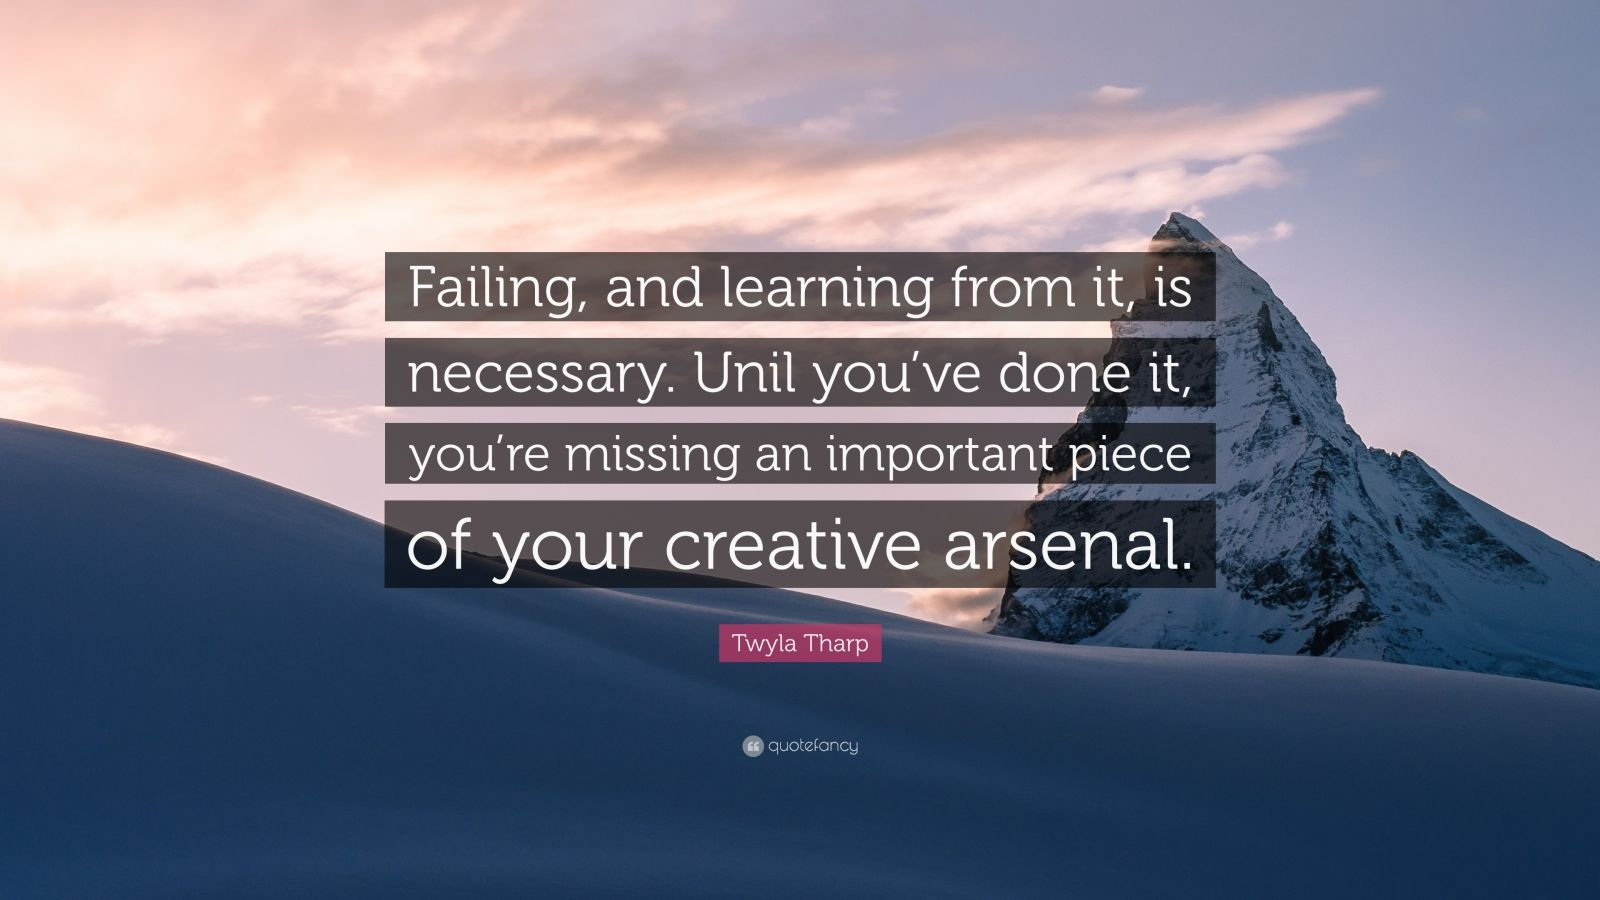 """Twyla Tharp Quote: """"Failing, and learning from it, is necessary. Unil you've done it, you're missing an important piece of your creative arsenal."""""""